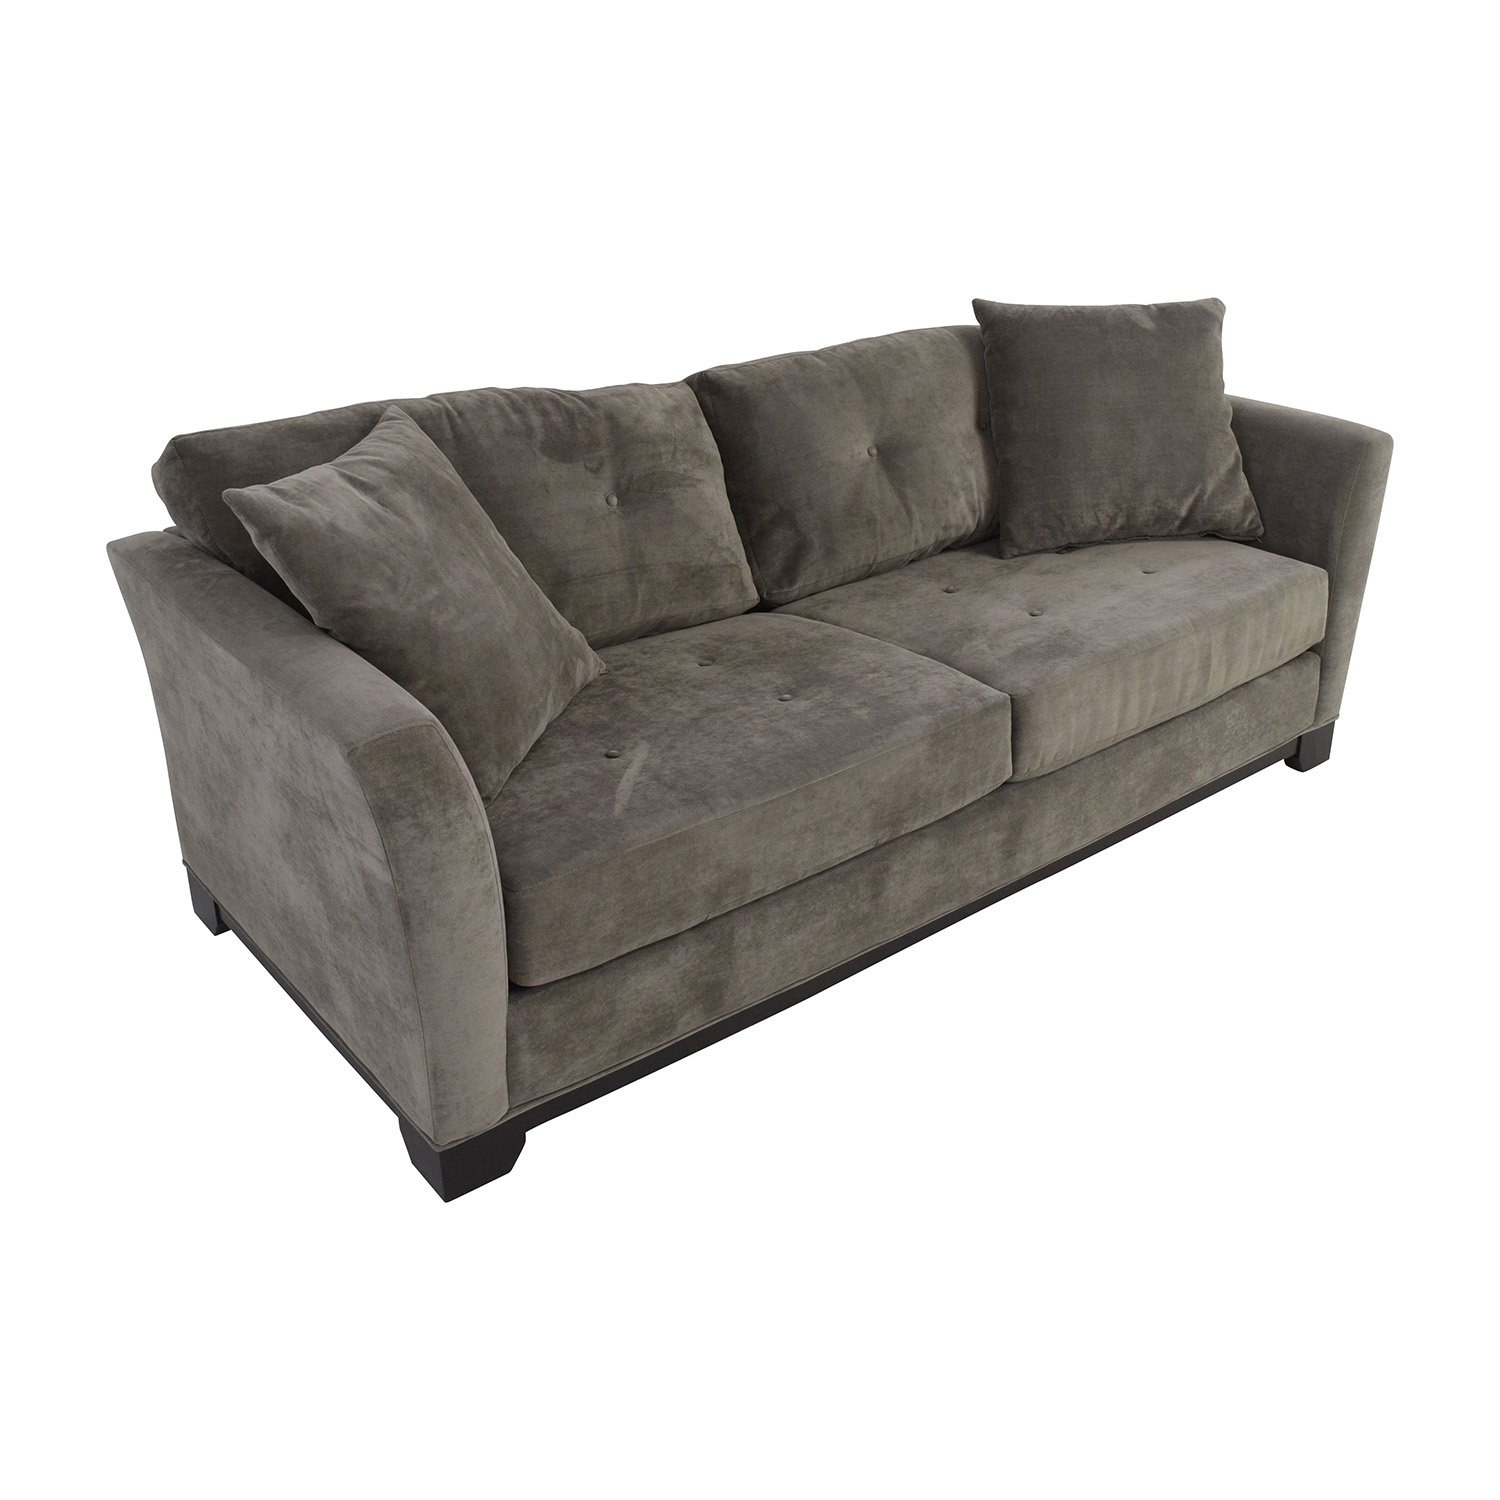 Macys Sofa: Macy's Macy's Grey Tufted Couch / Sofas